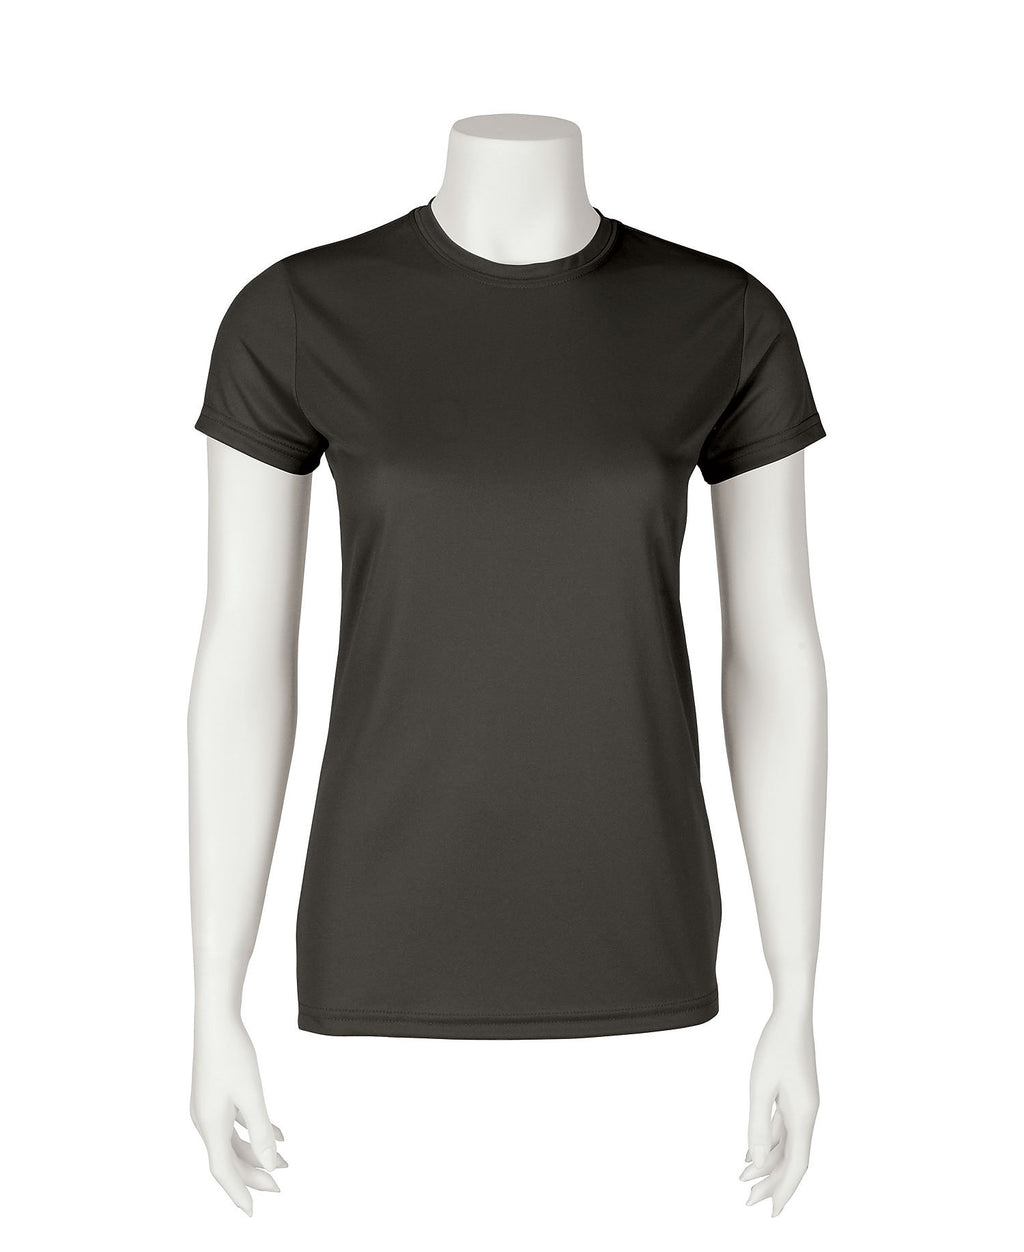 Women's DRI-FIT T-Shirt PREMIUM